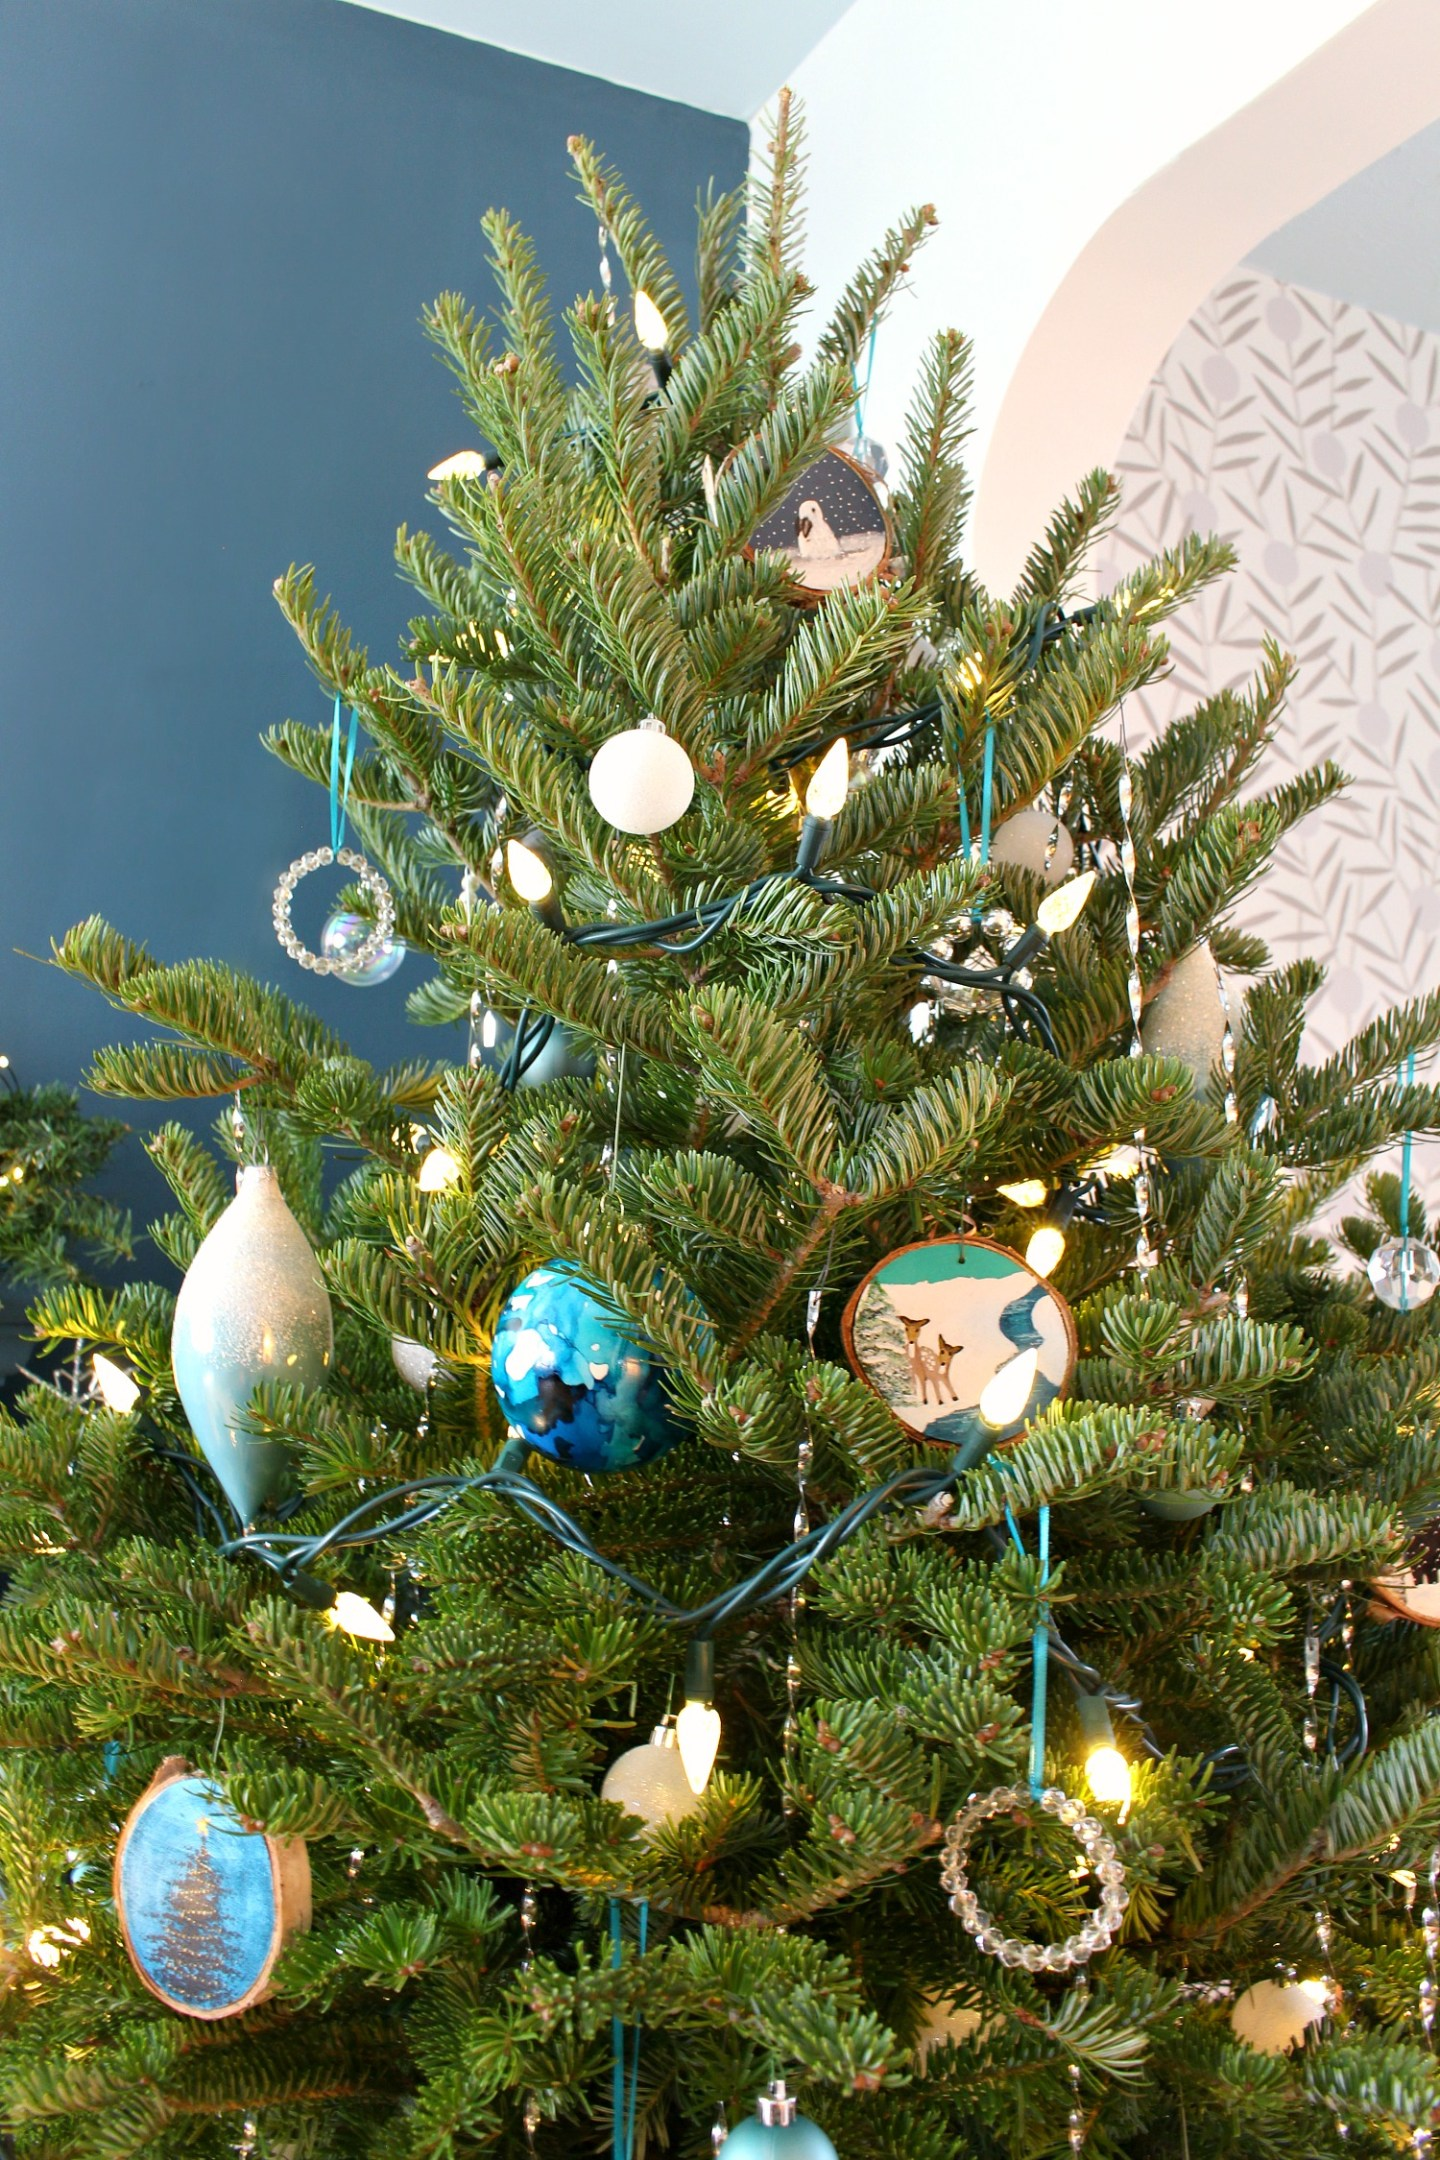 Blue and White Themed Christmas Tree Ornaments